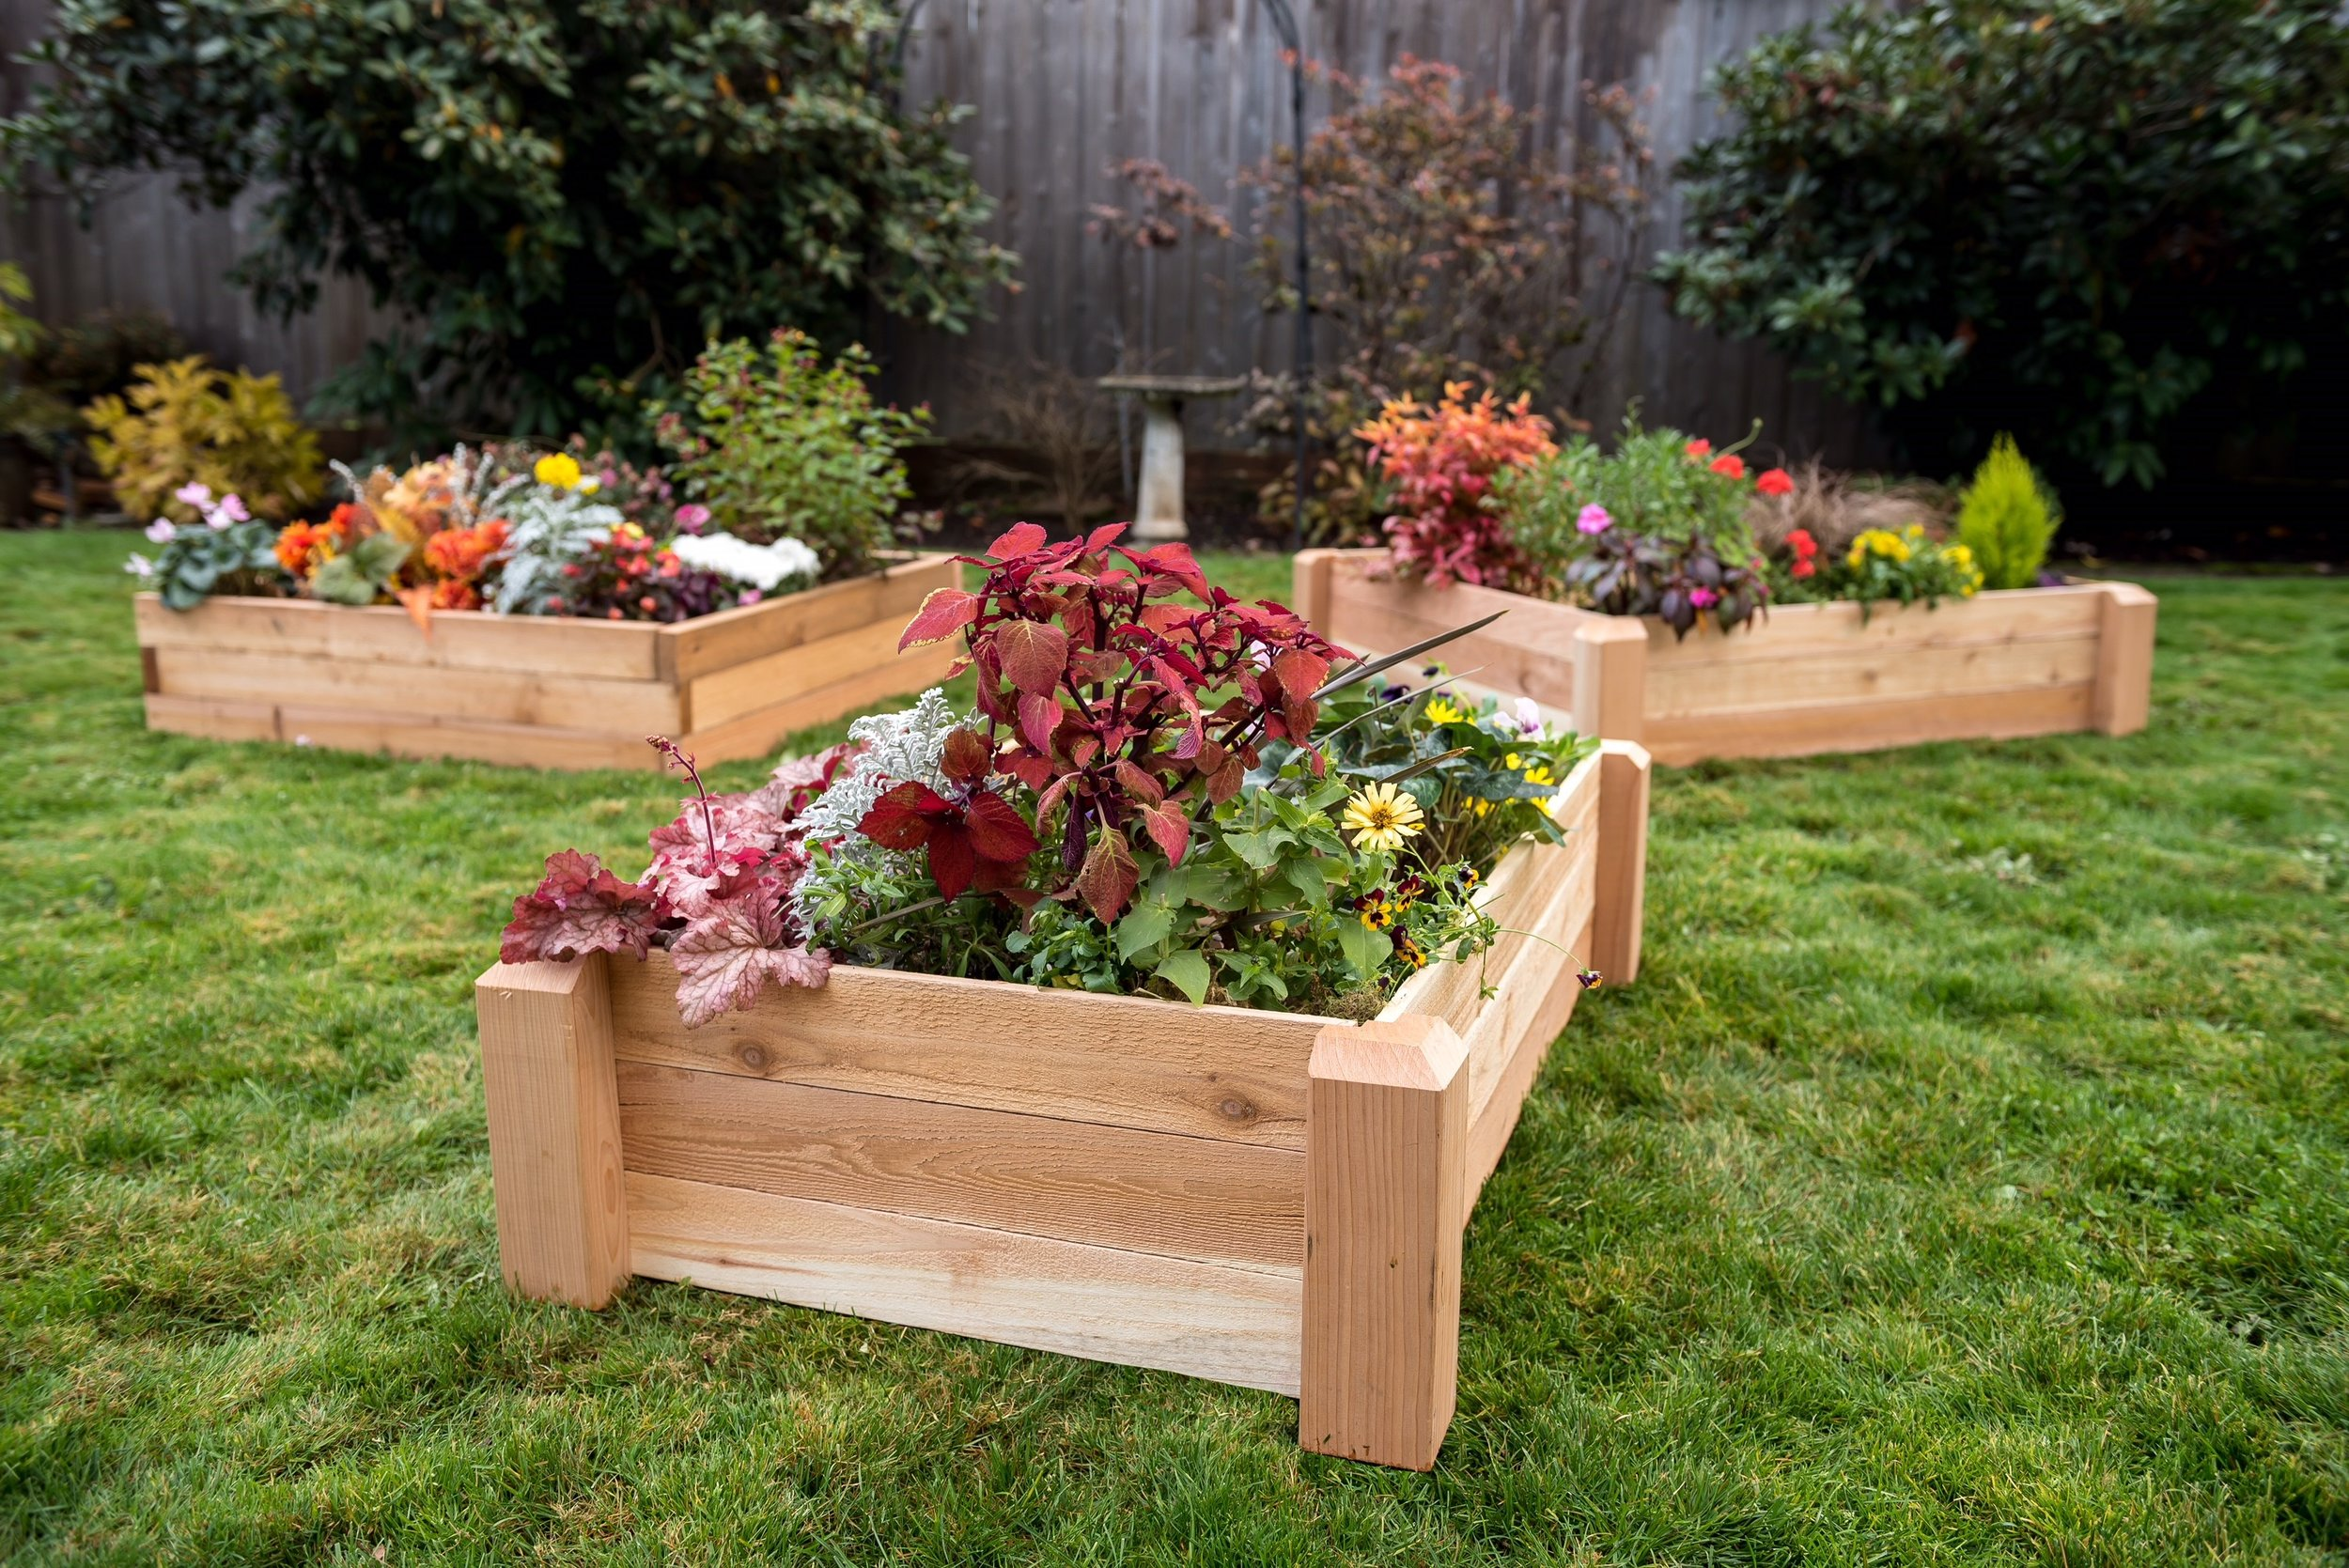 raised beds 3'x6', 2'x4' and 4'x4'